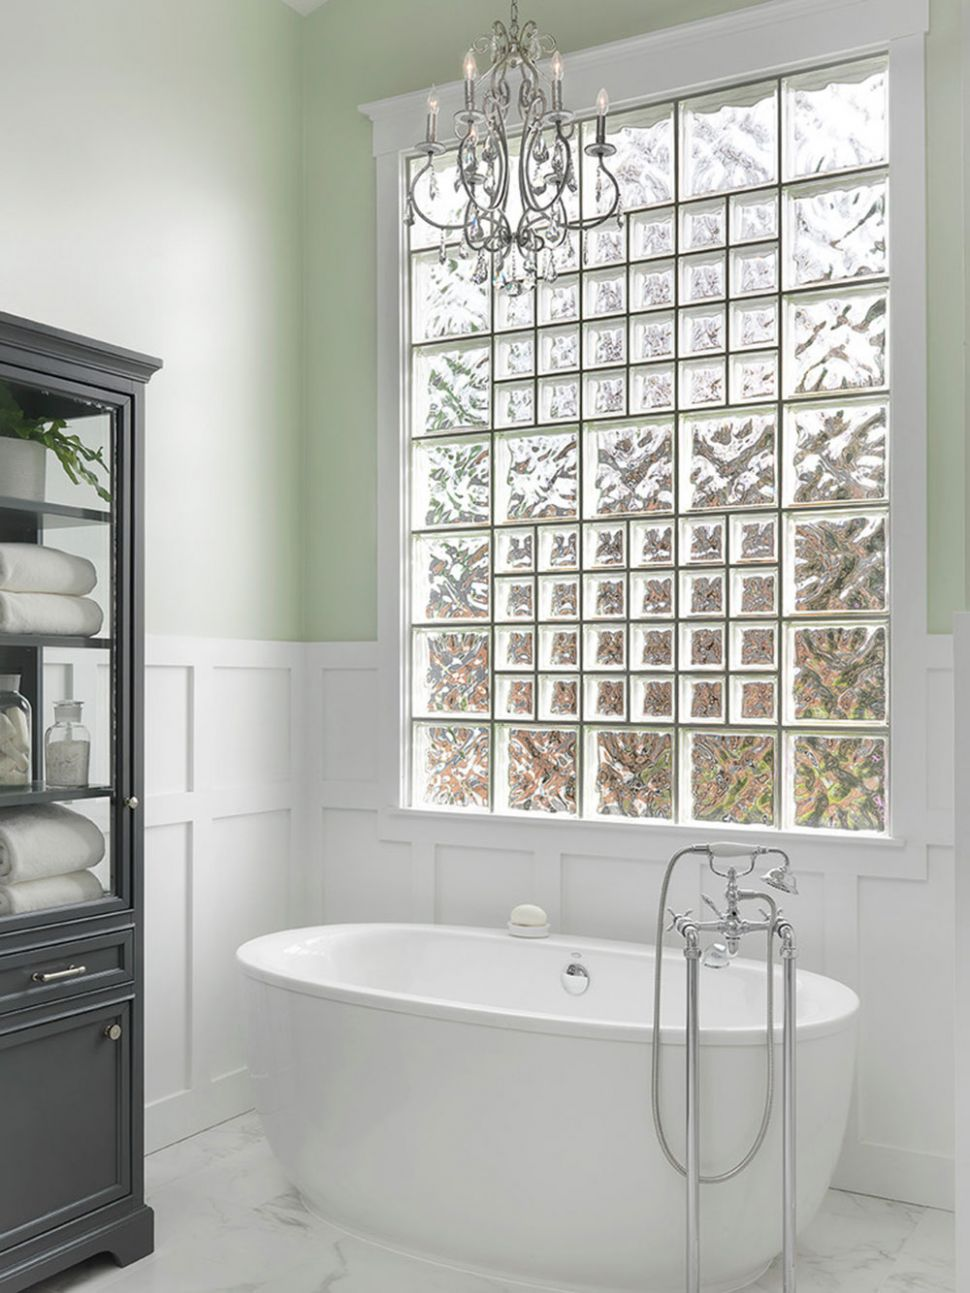 Bathroom windows ideas that you can try for your home - window ideas for bathroom